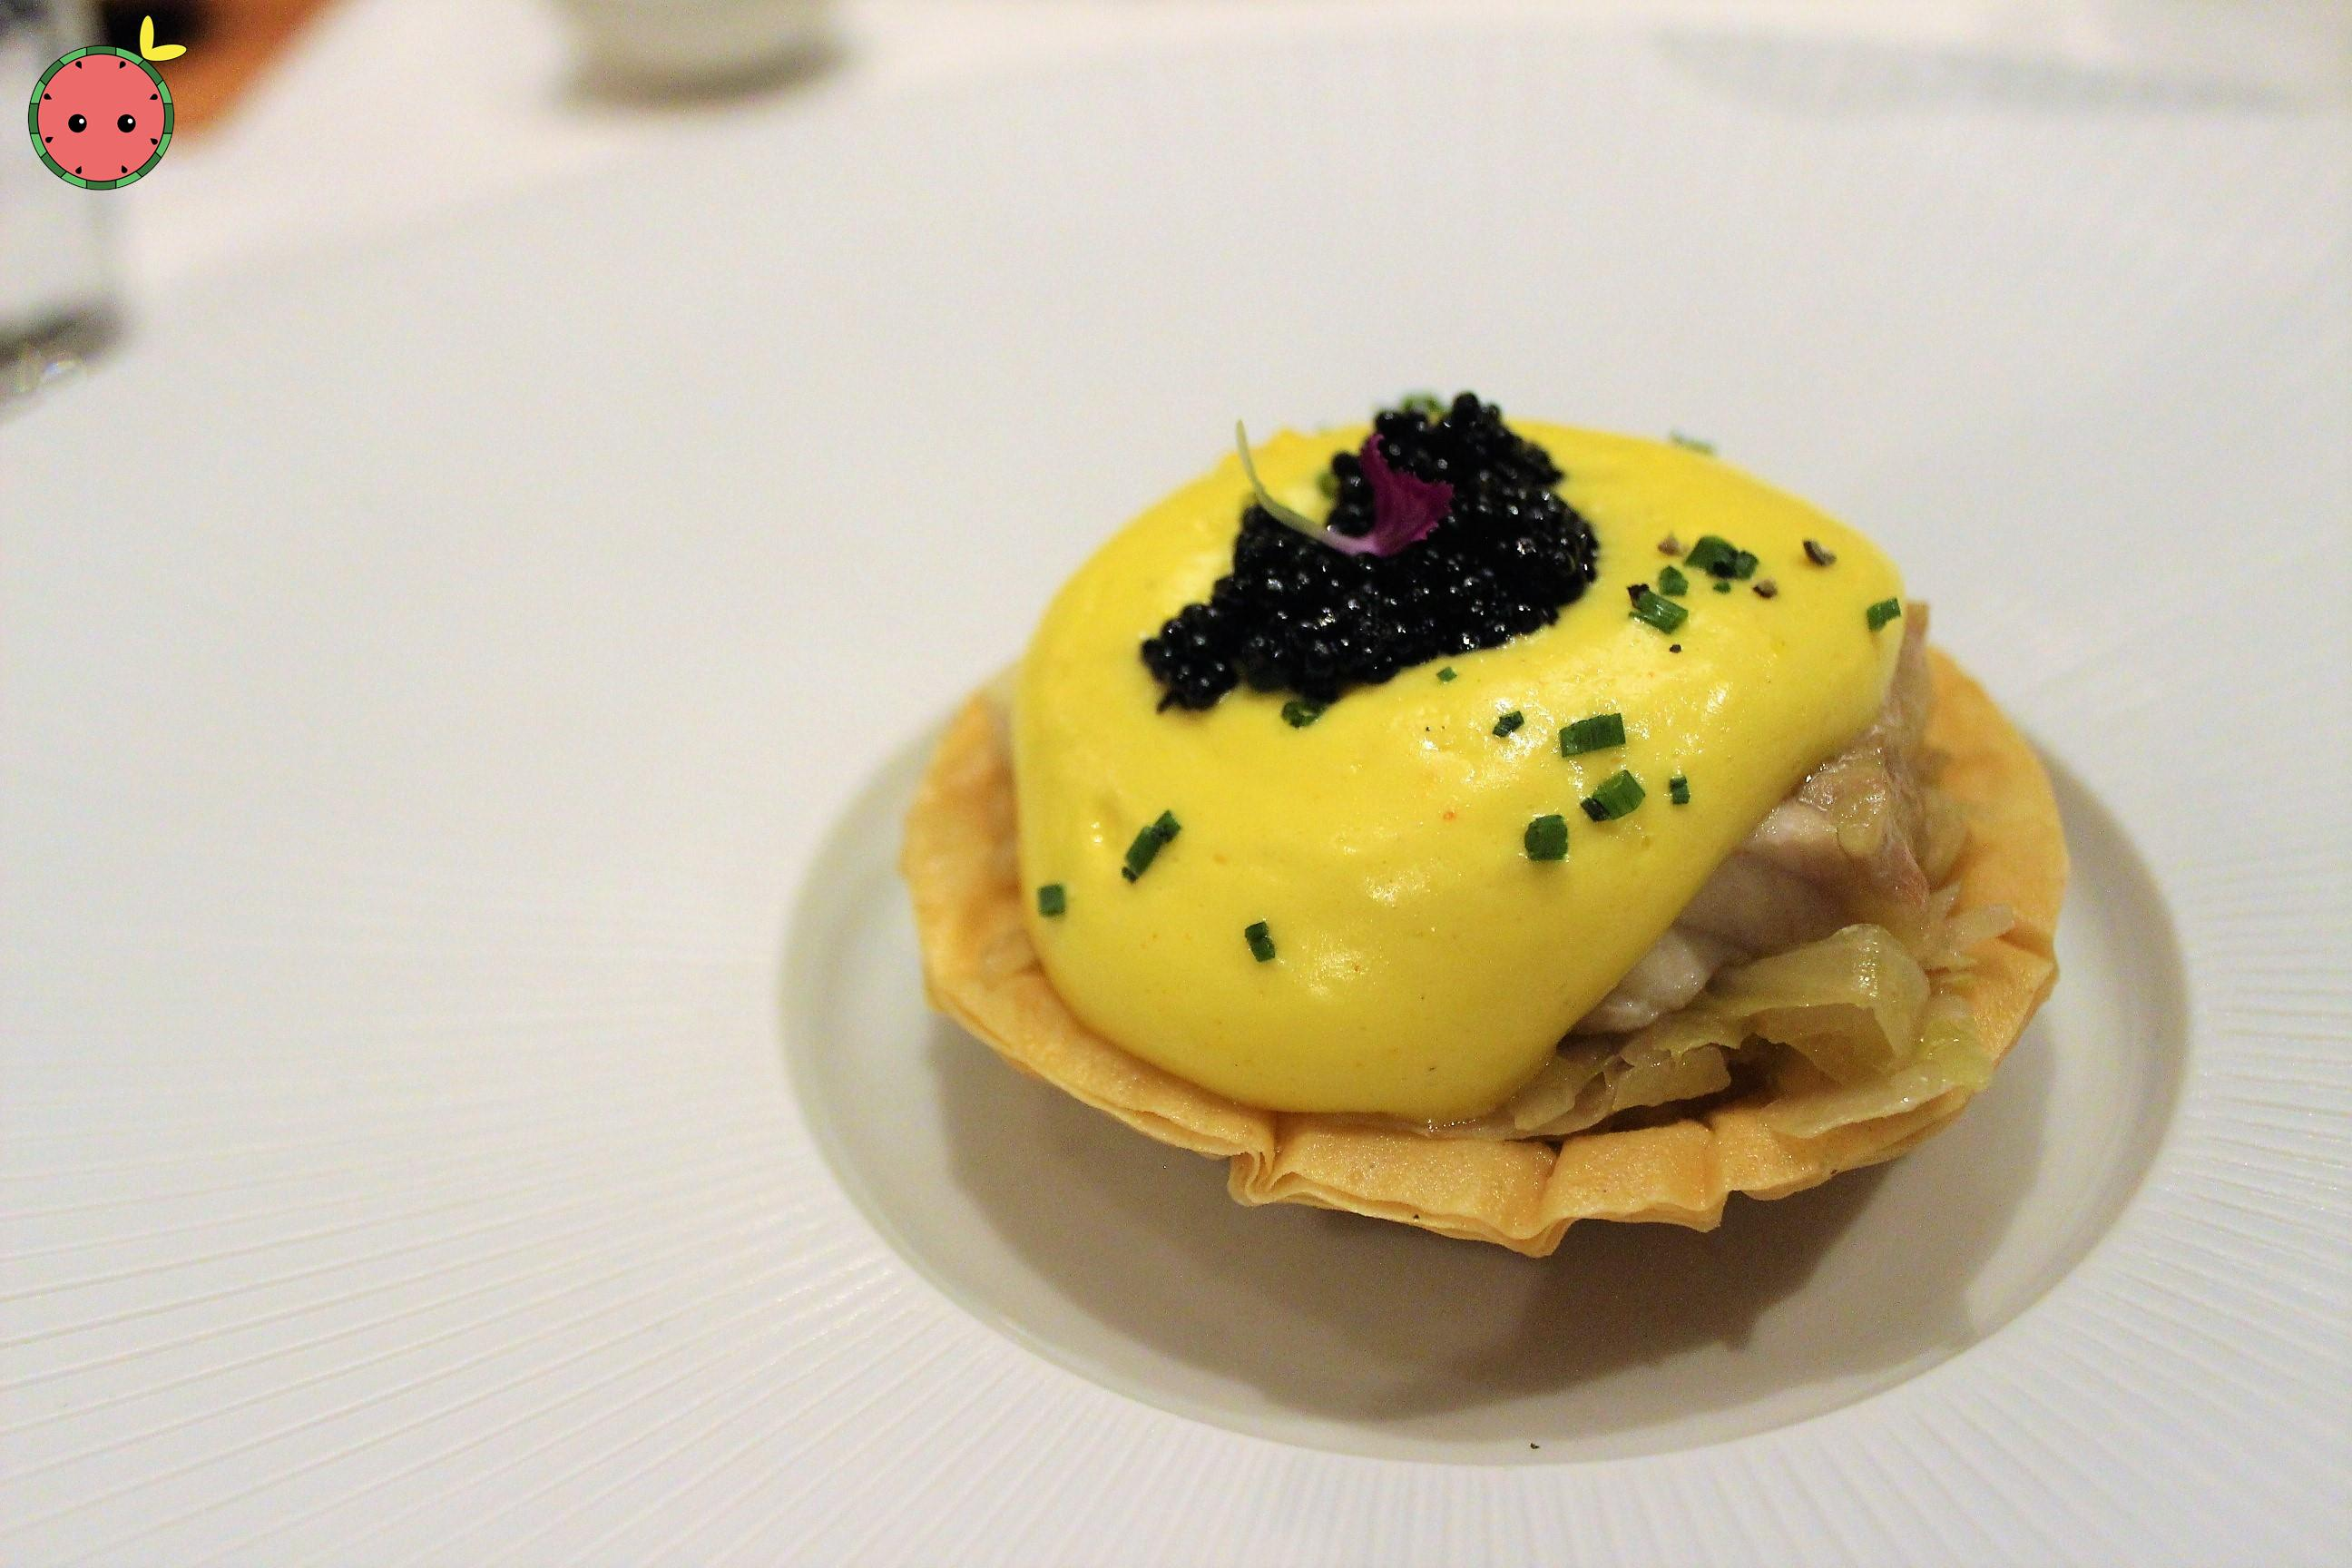 Sturgeon & Sauerkraut Tart (American caviar mousseline with applewood smoke)